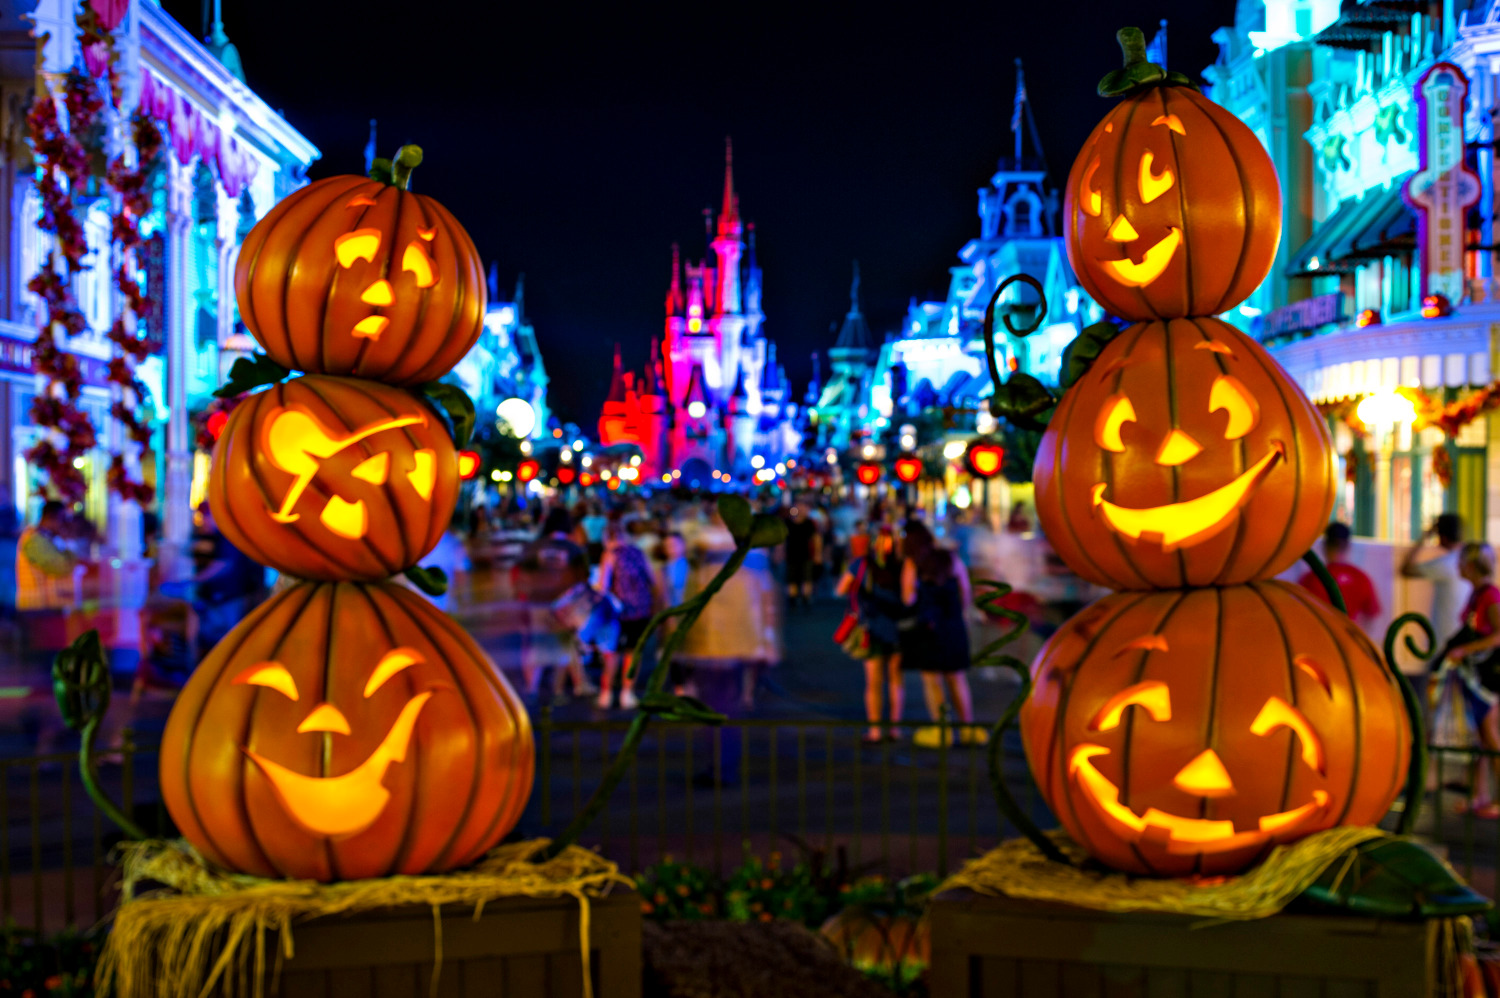 Horror Halloween Party 2020 Disney cancels Mickey's Not So Scary Halloween Party in 2020